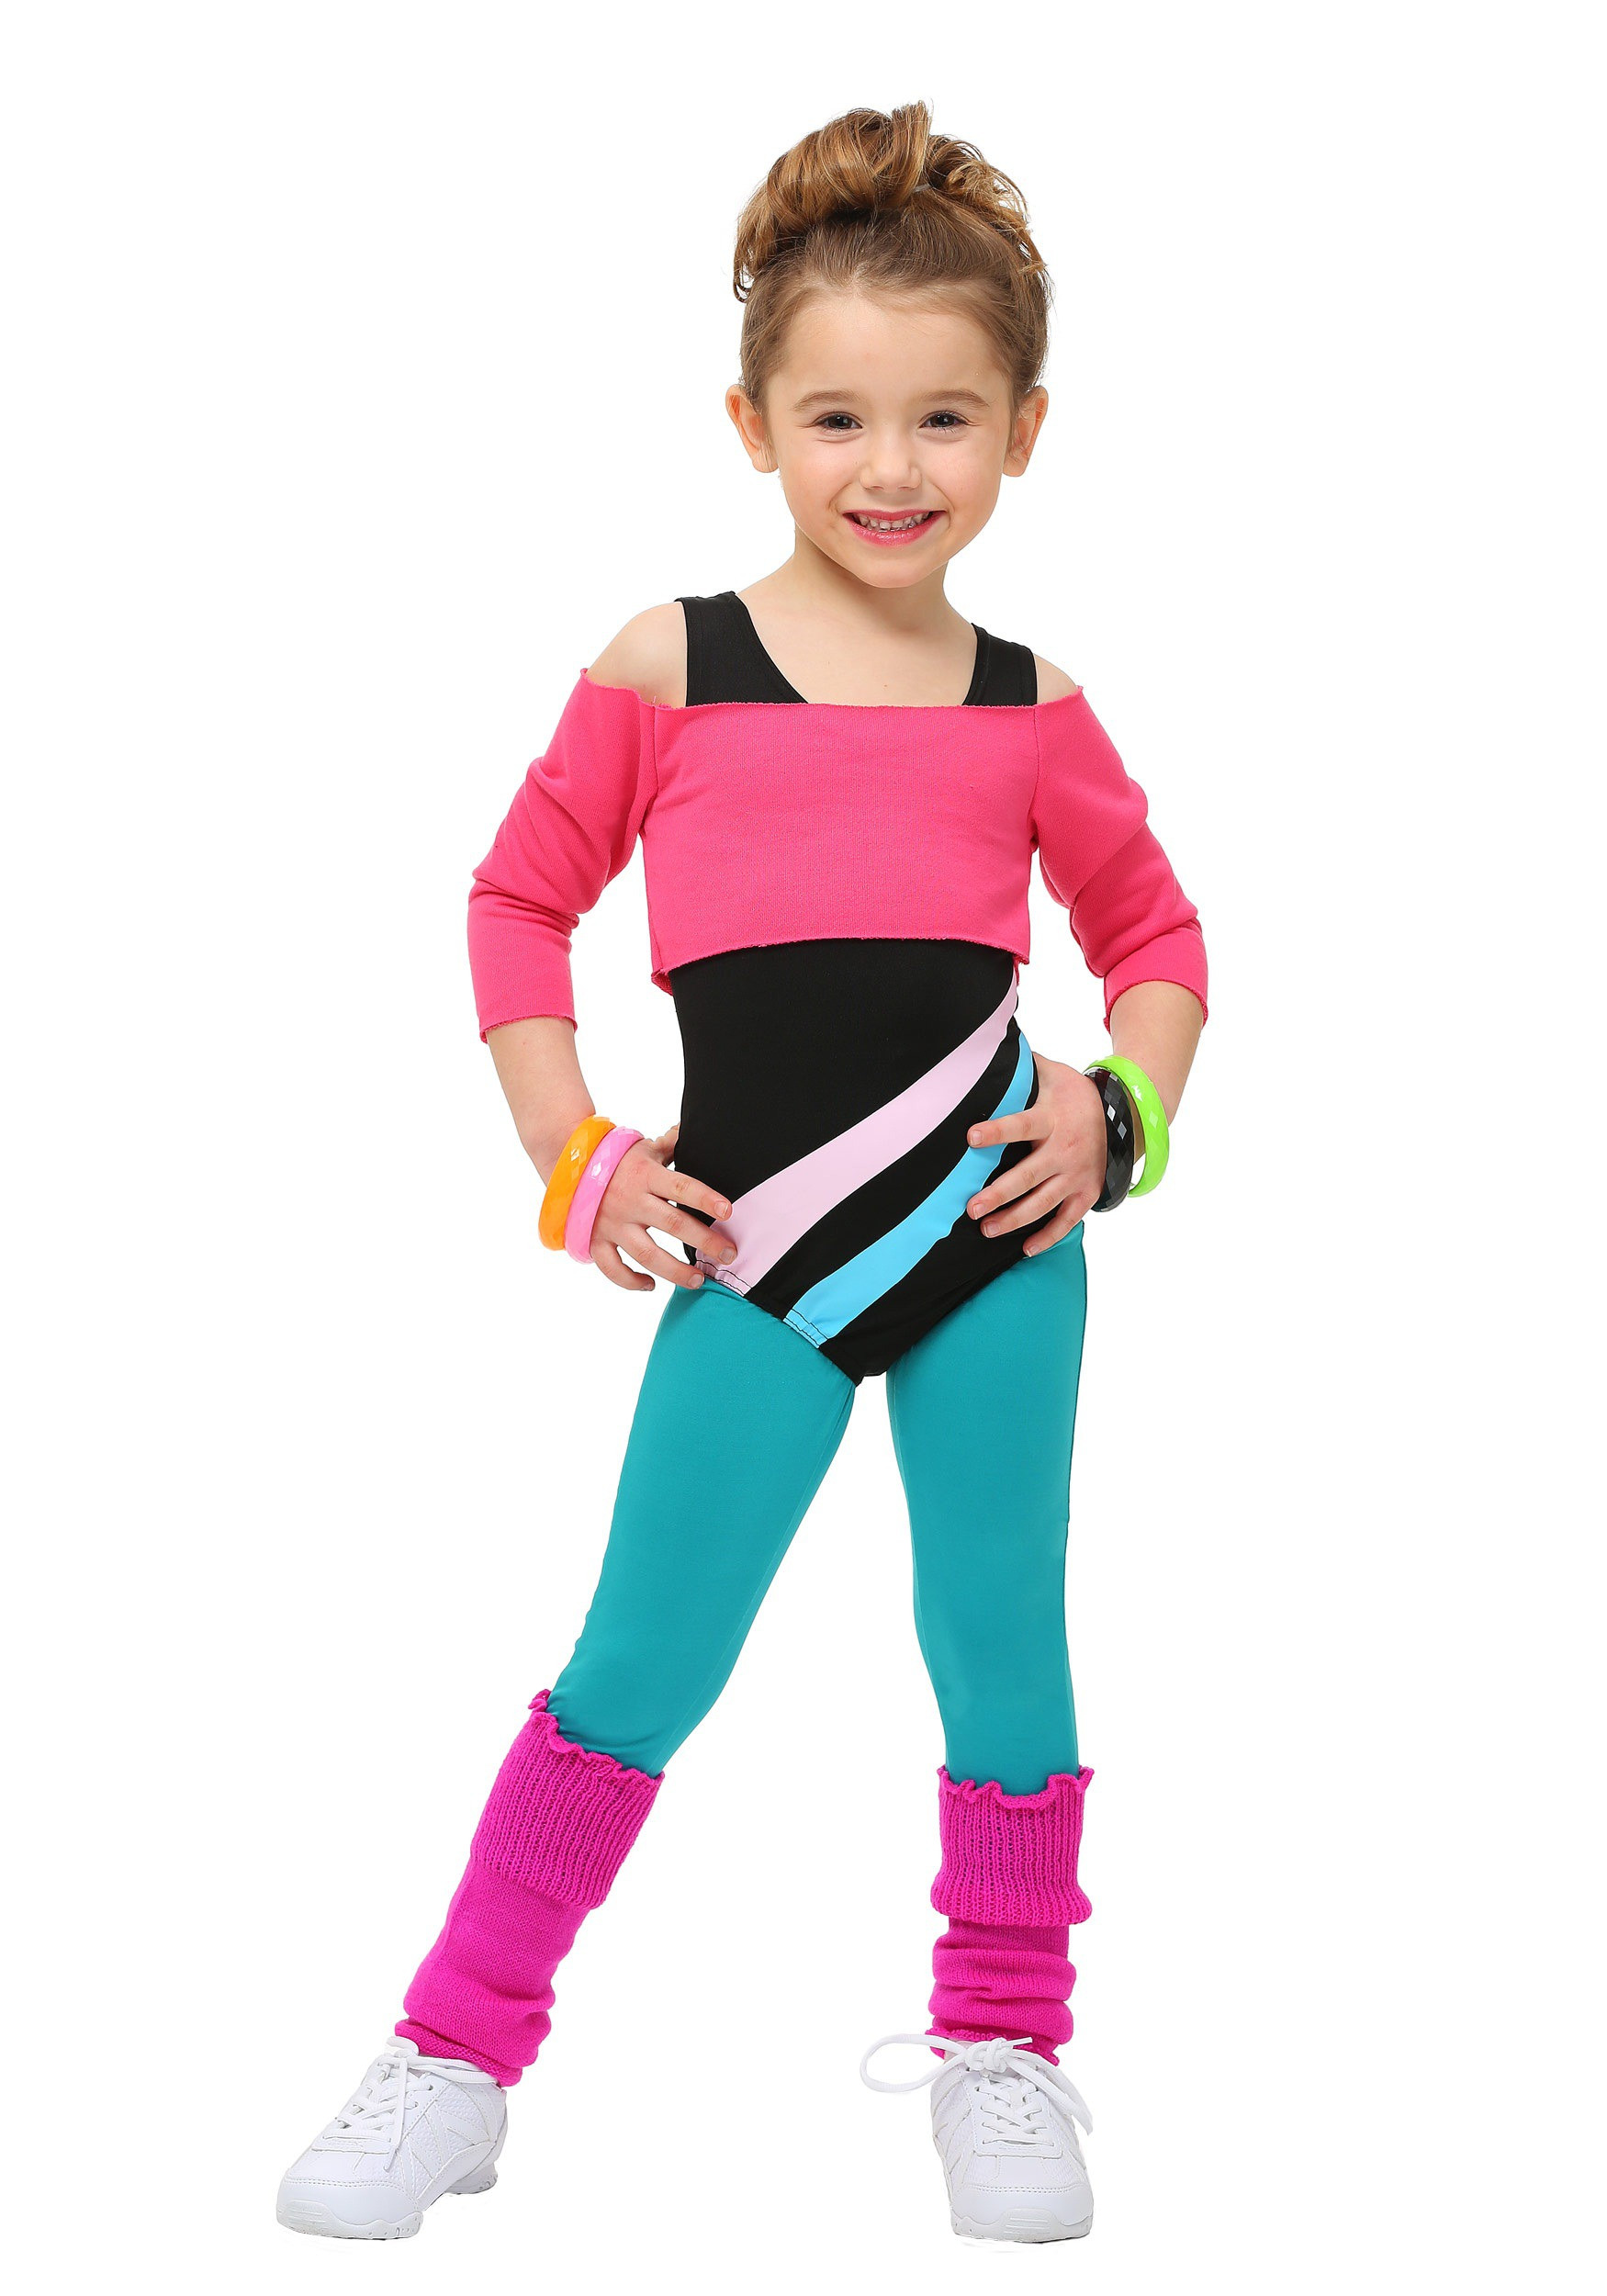 Best ideas about 80S Workout Costume DIY . Save or Pin Toddler 80 s Workout Girl Costume Now.